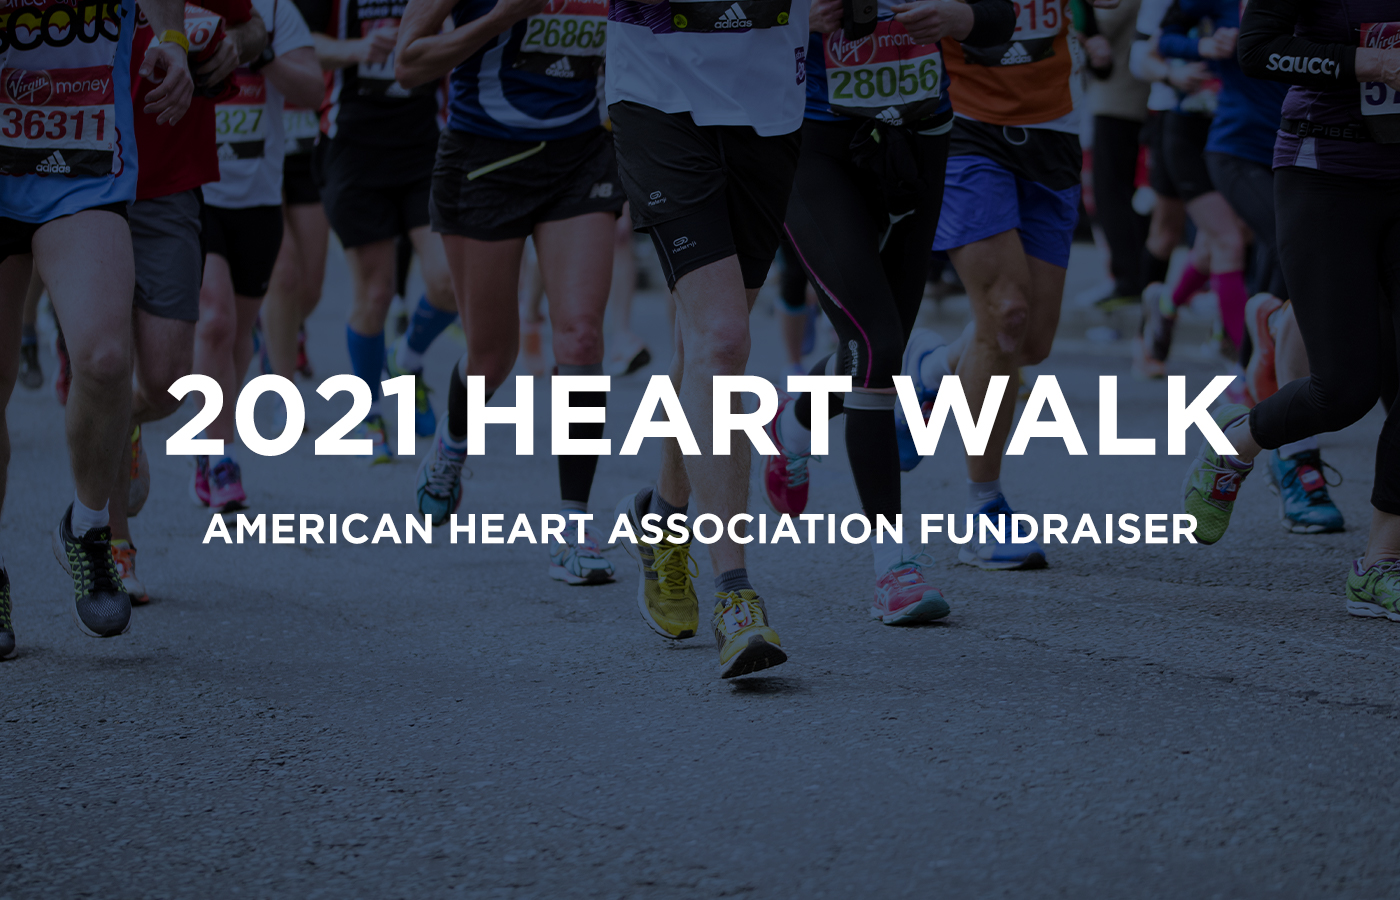 2021 Heart Walk Fundraiser [American Heart Association]